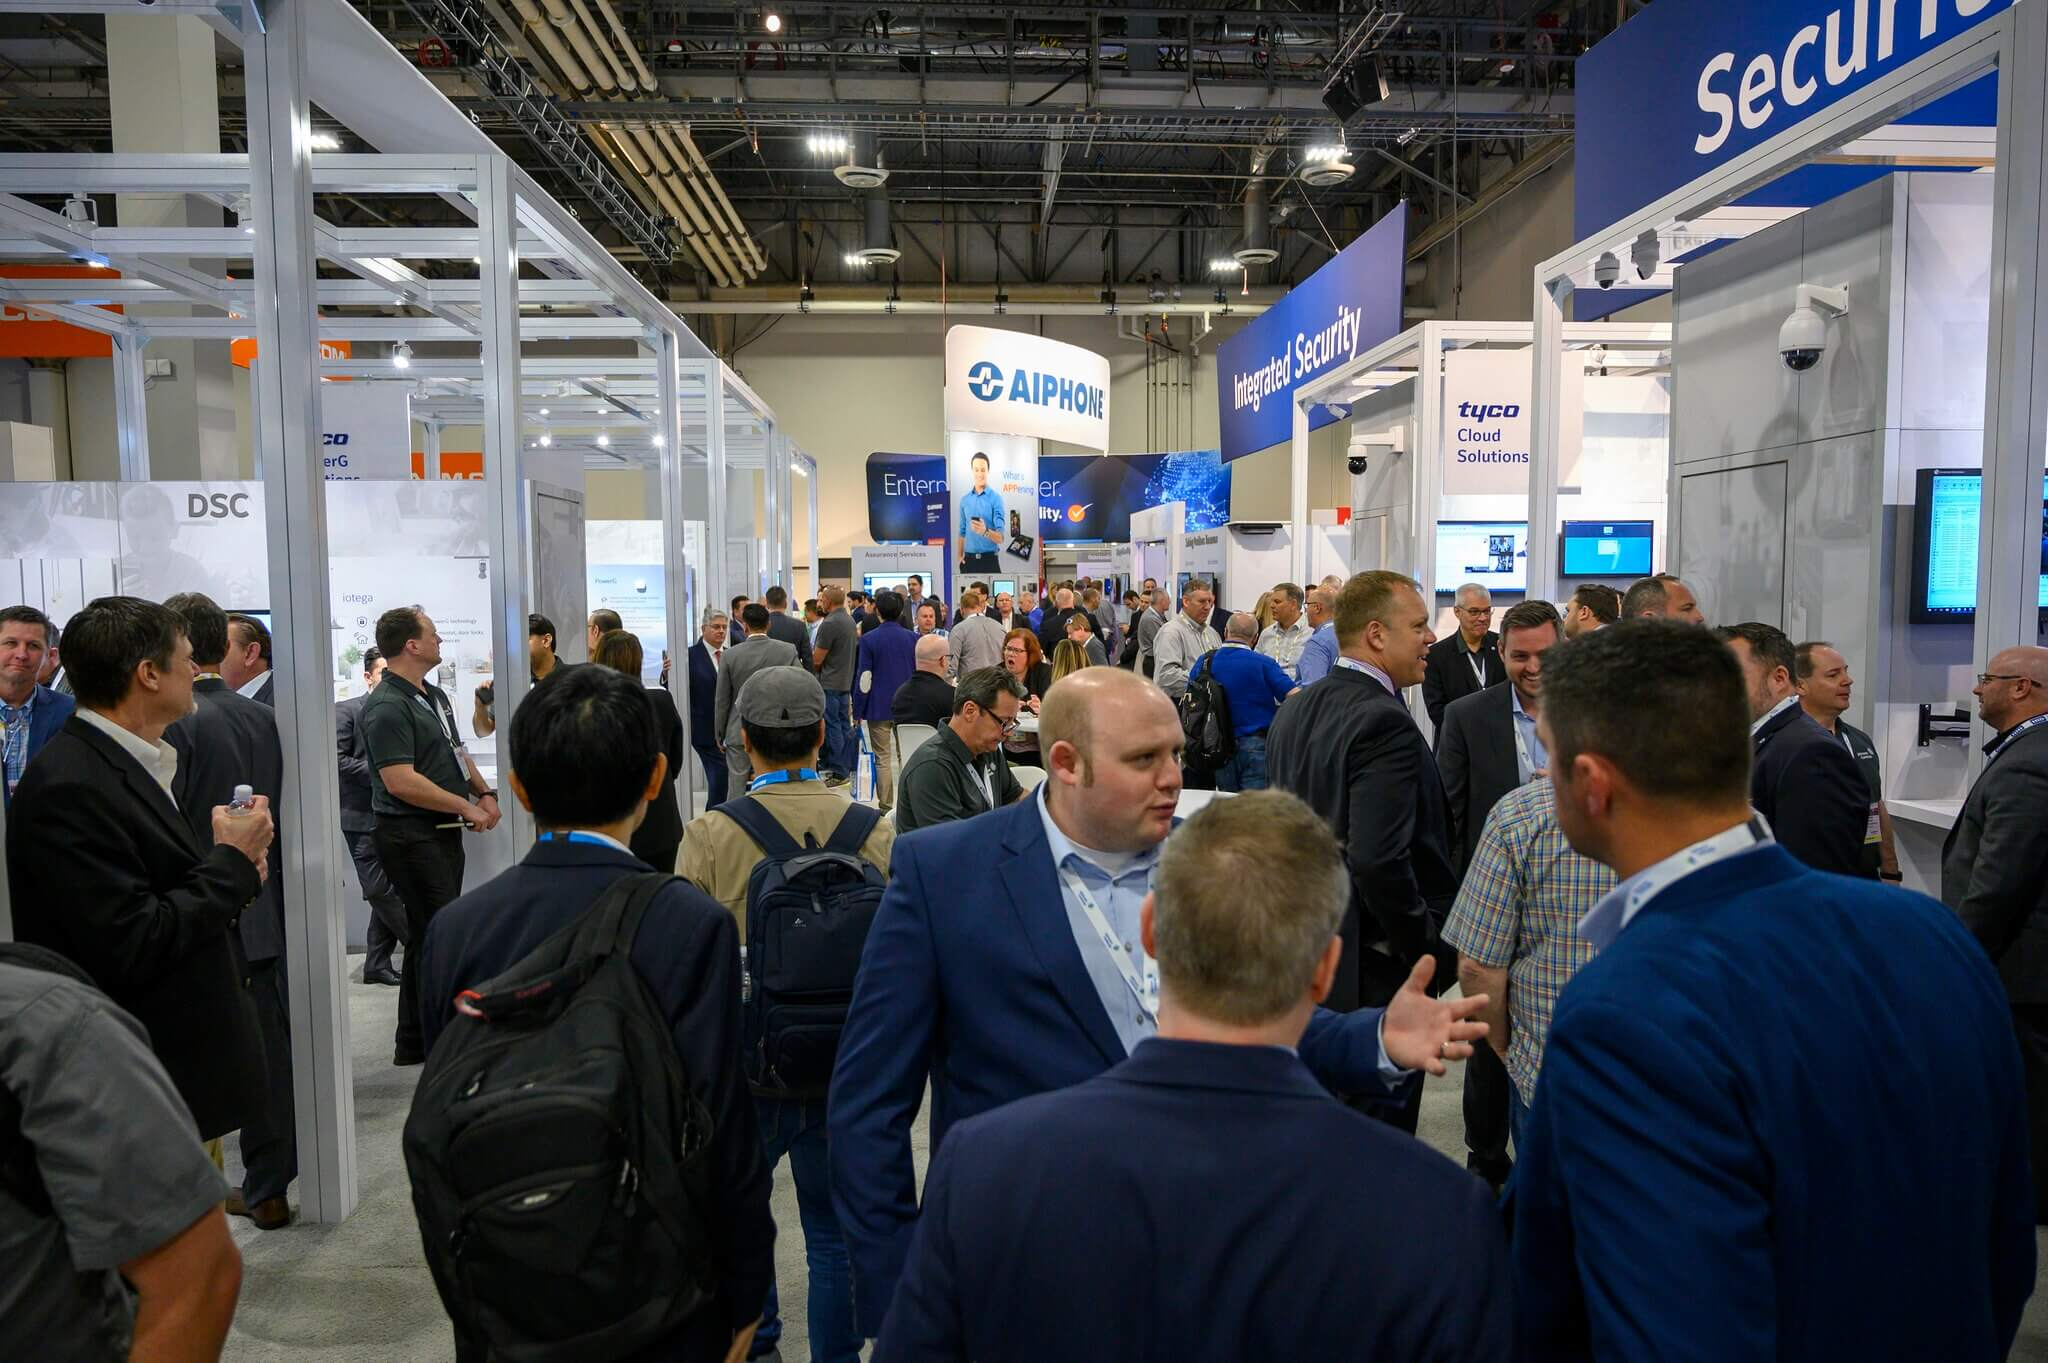 ISC West provided the opportunity to increase worldwide awareness of the PSSA brand.